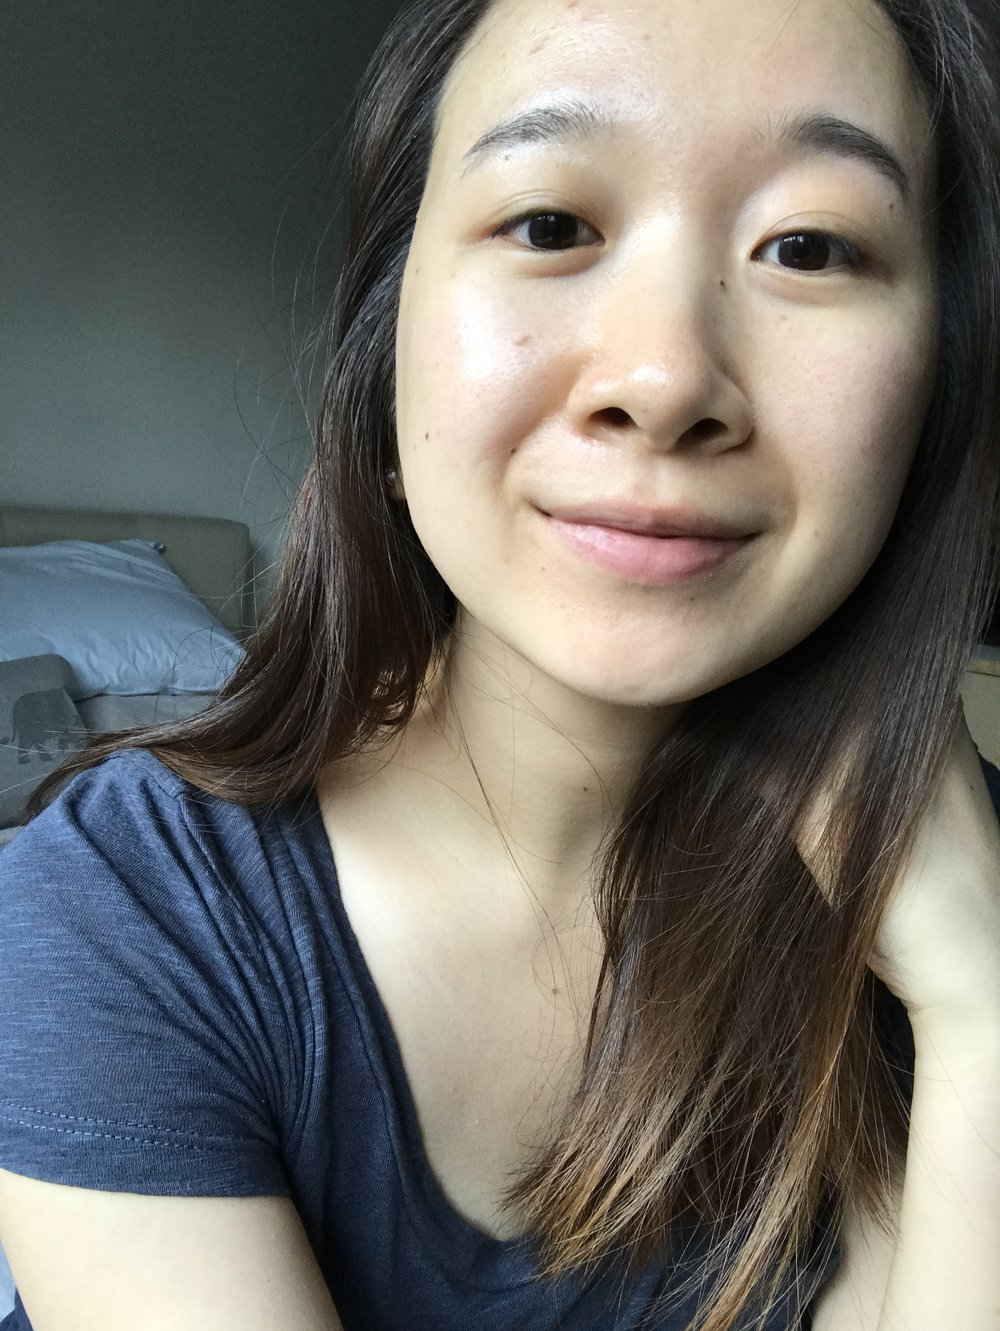 Taken on day 13.My pores are less visible and my cheeks are not red.